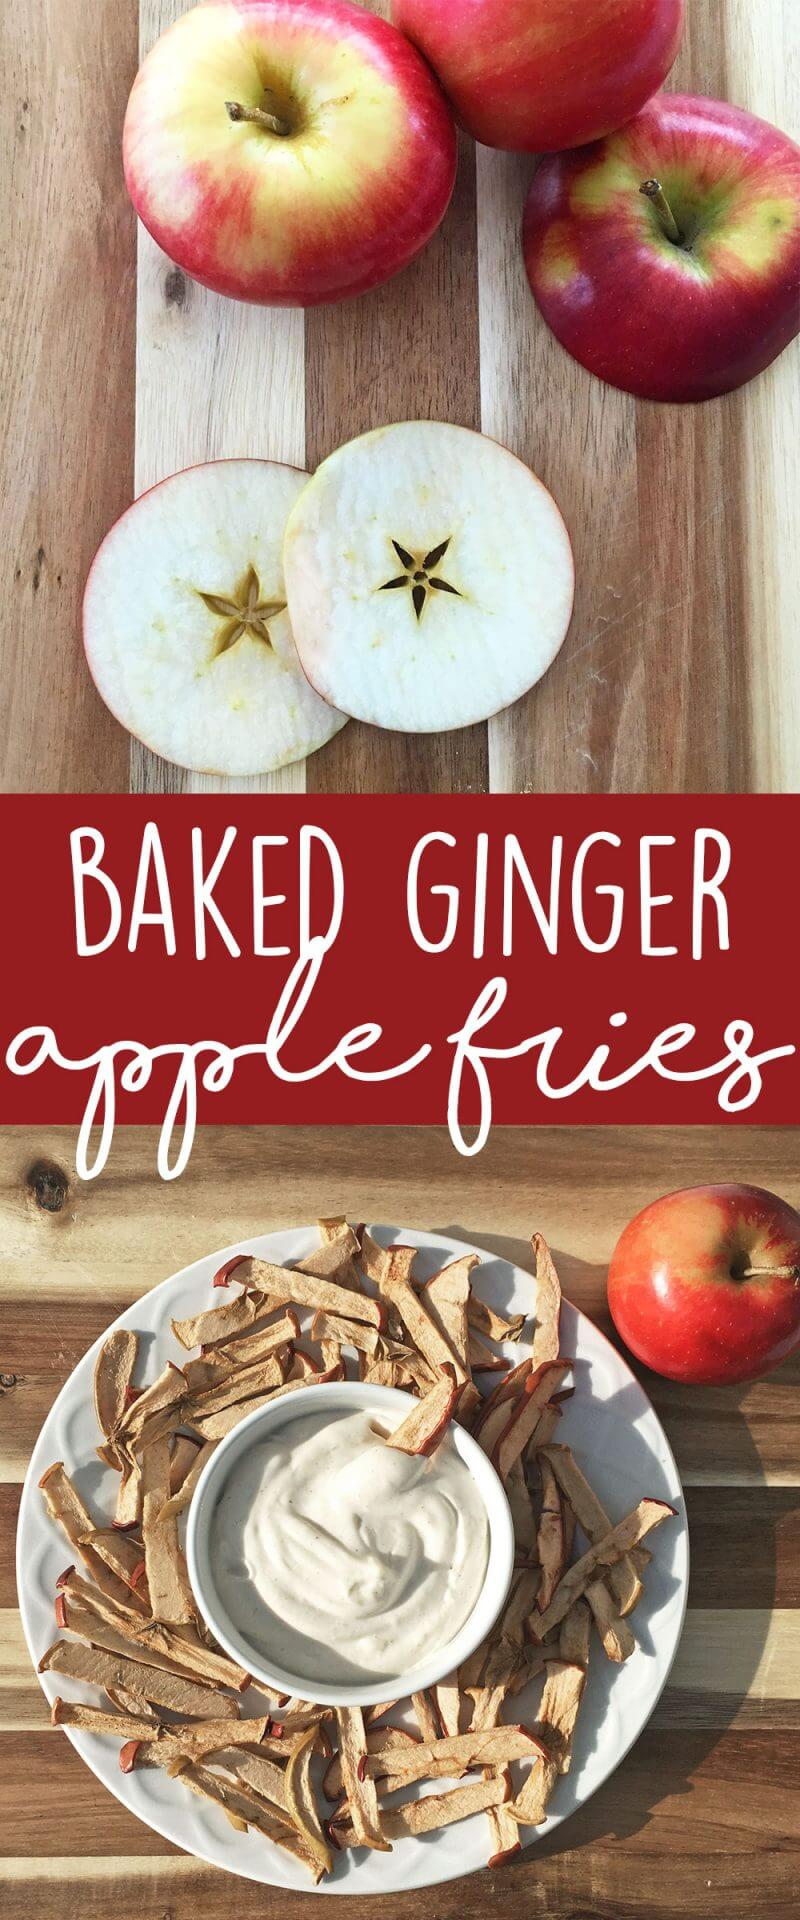 Healthy snack idea and easy to make in batches: Baked Ginger Apple Fries with a cinnamon yogurt dip! Fun and delicious snack for kids AND adults.